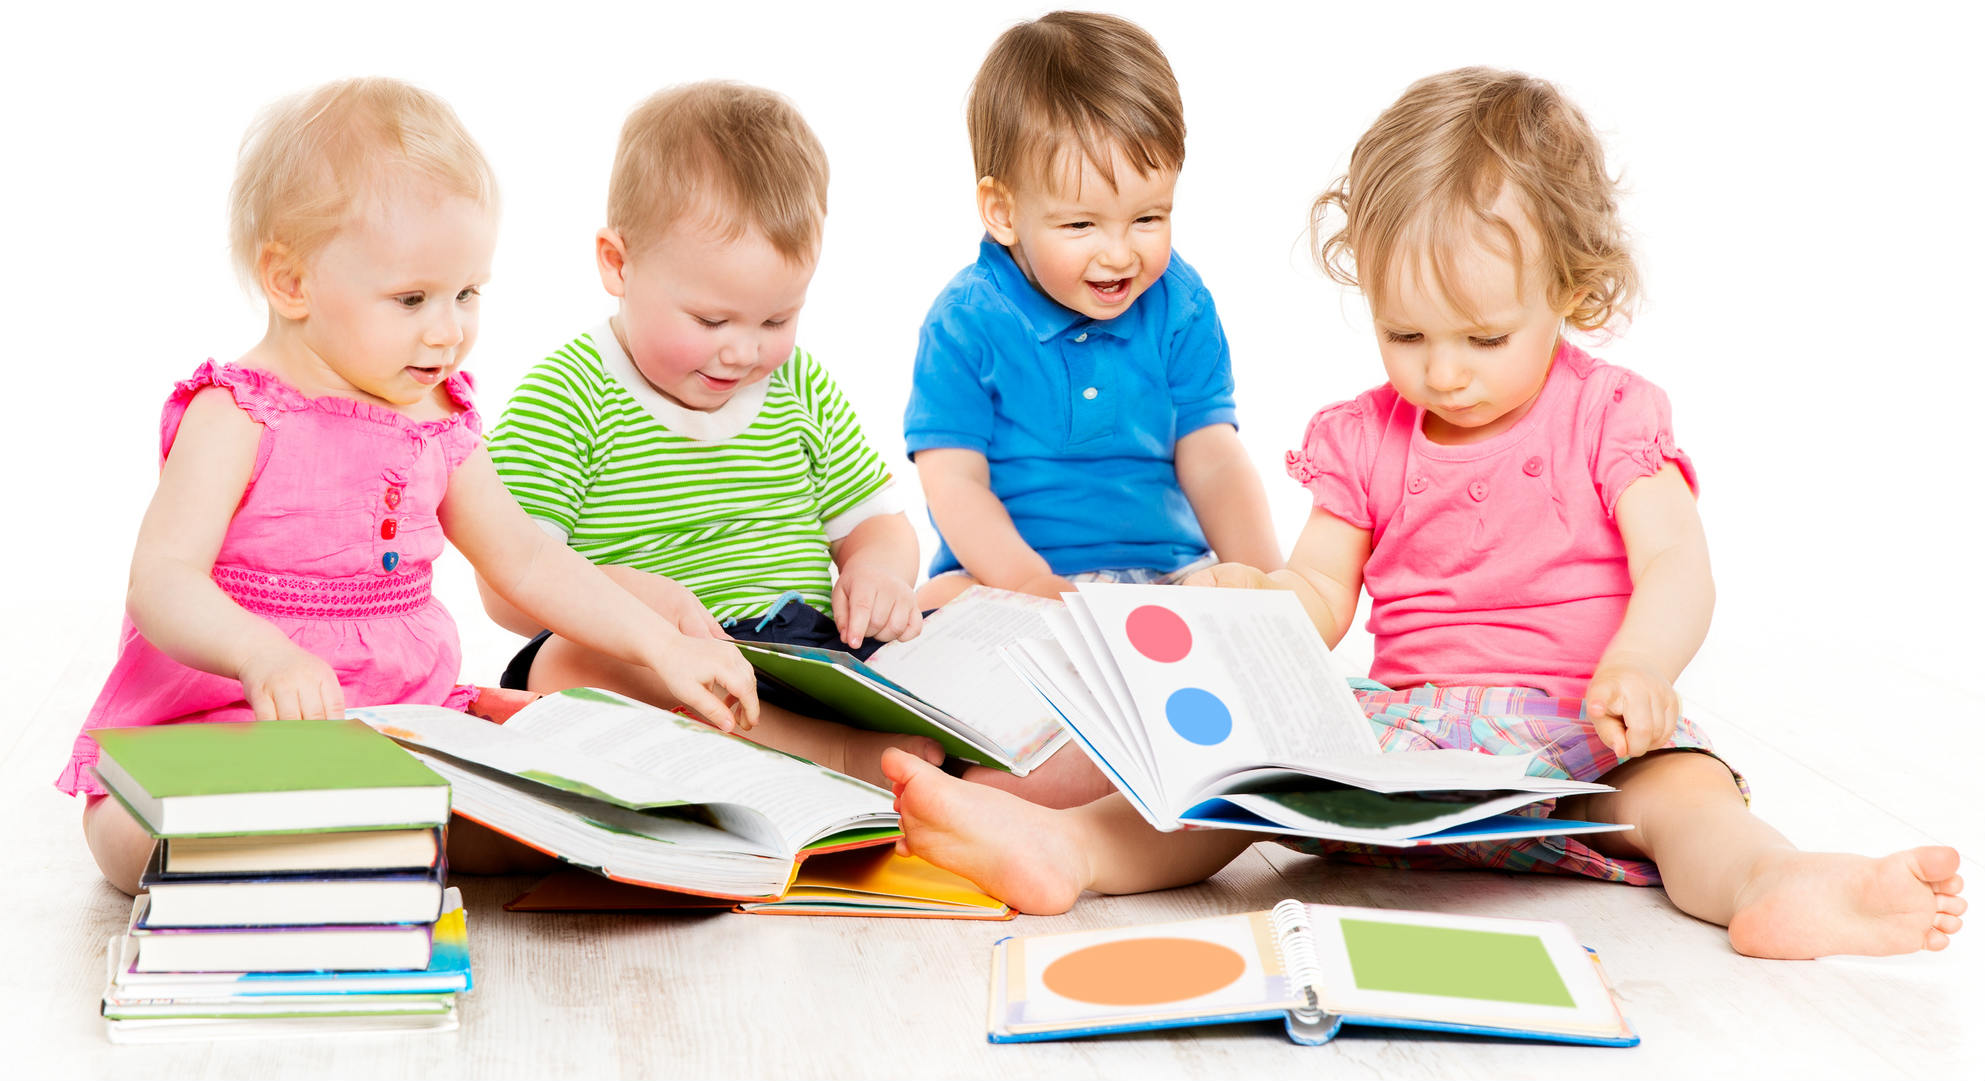 Flawless Child Care Agency In San Antonio Tx 78212